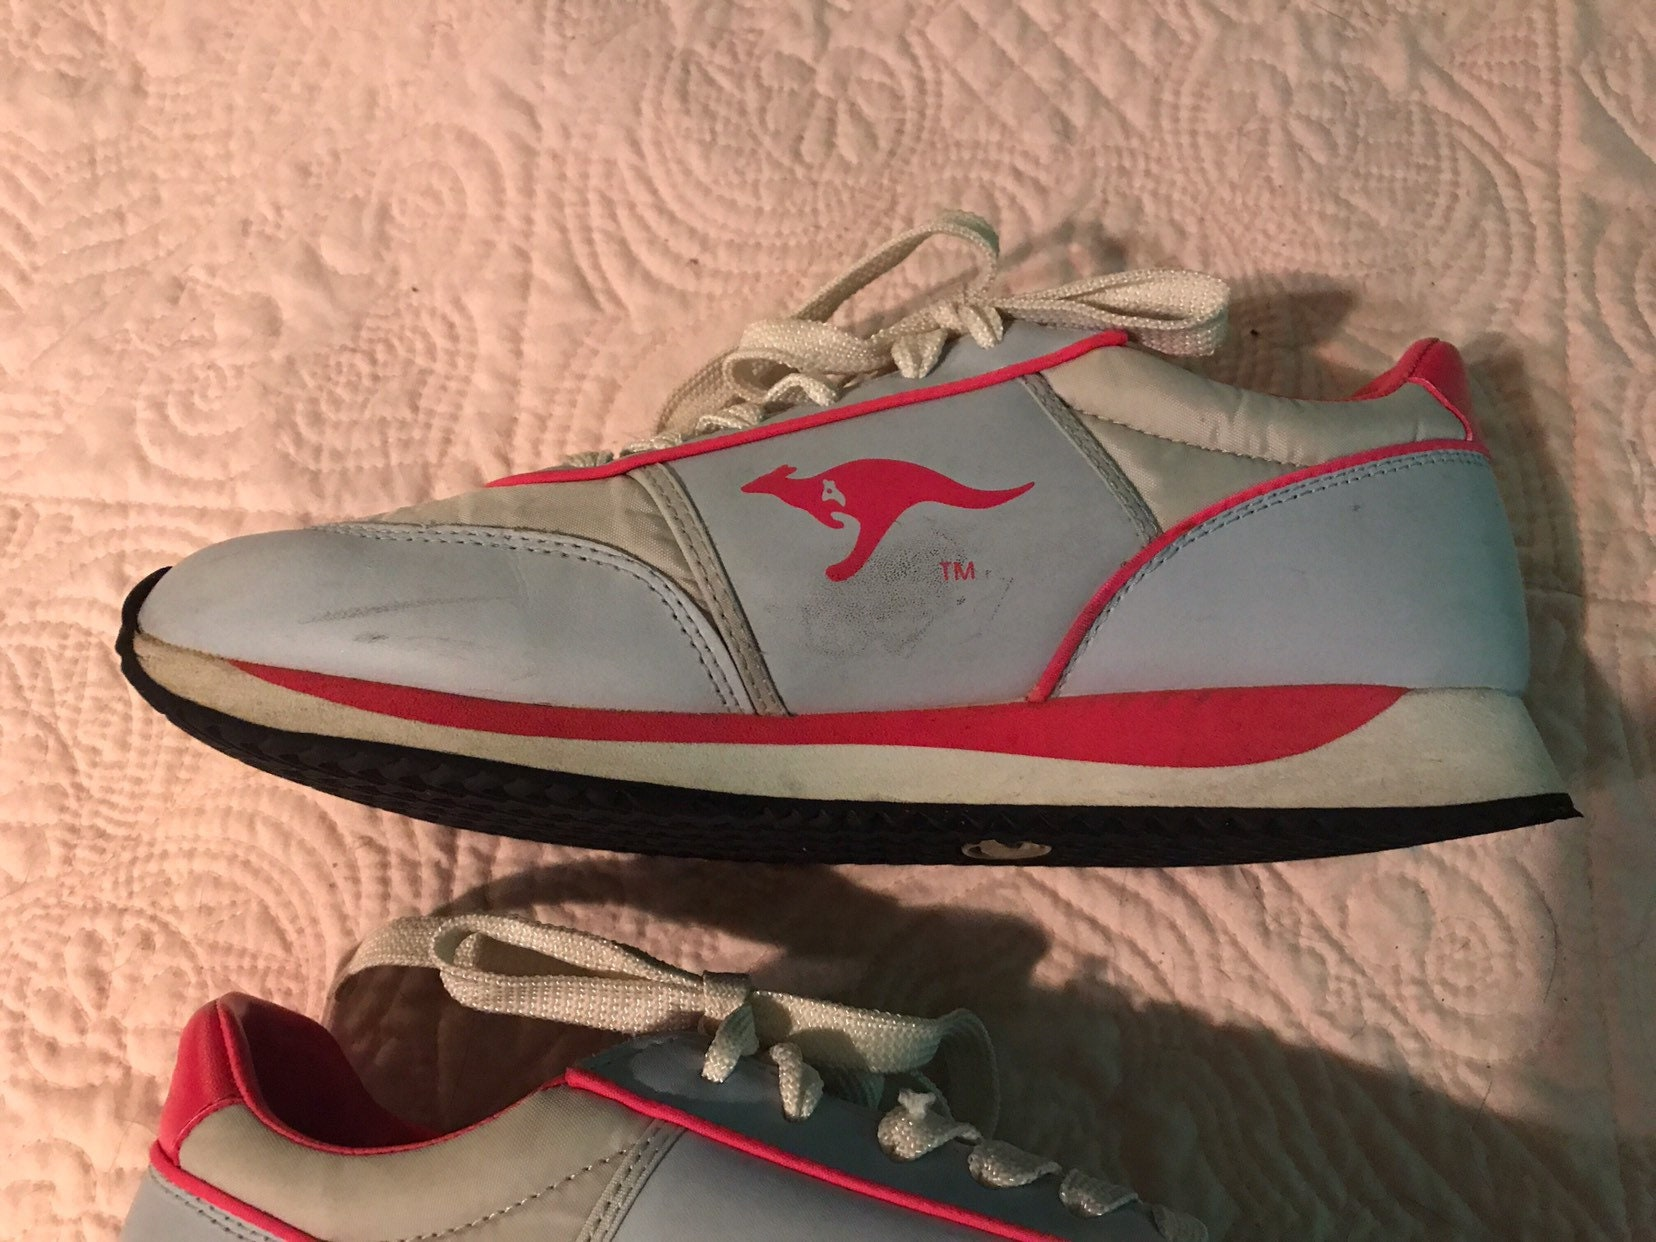 d75a9c834410 Blue and Pink Kangaroo Athletic Shoes. Tennis Shoes. Kangaroo. Size 10. 1